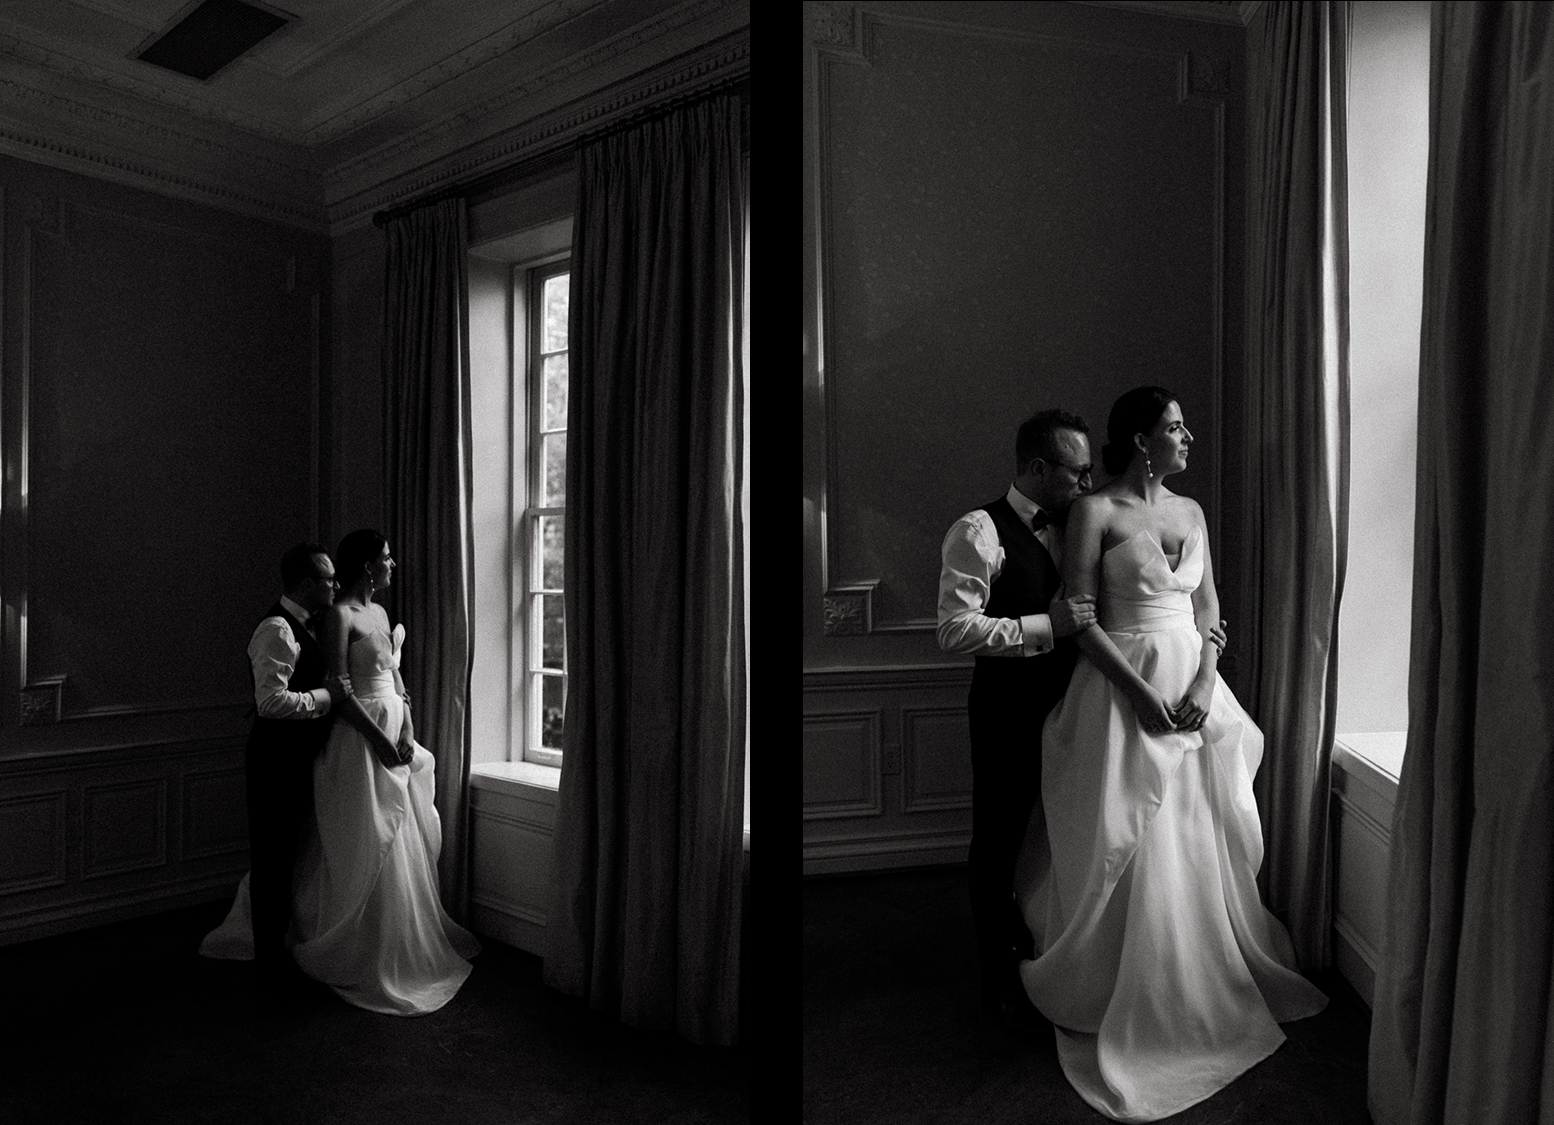 68-Graydon-Hall-Manor-Real-Wedding-Documentary-Wedding-Photographer-Toronto-Ontario-123-spread-16.JPG-68.JPG